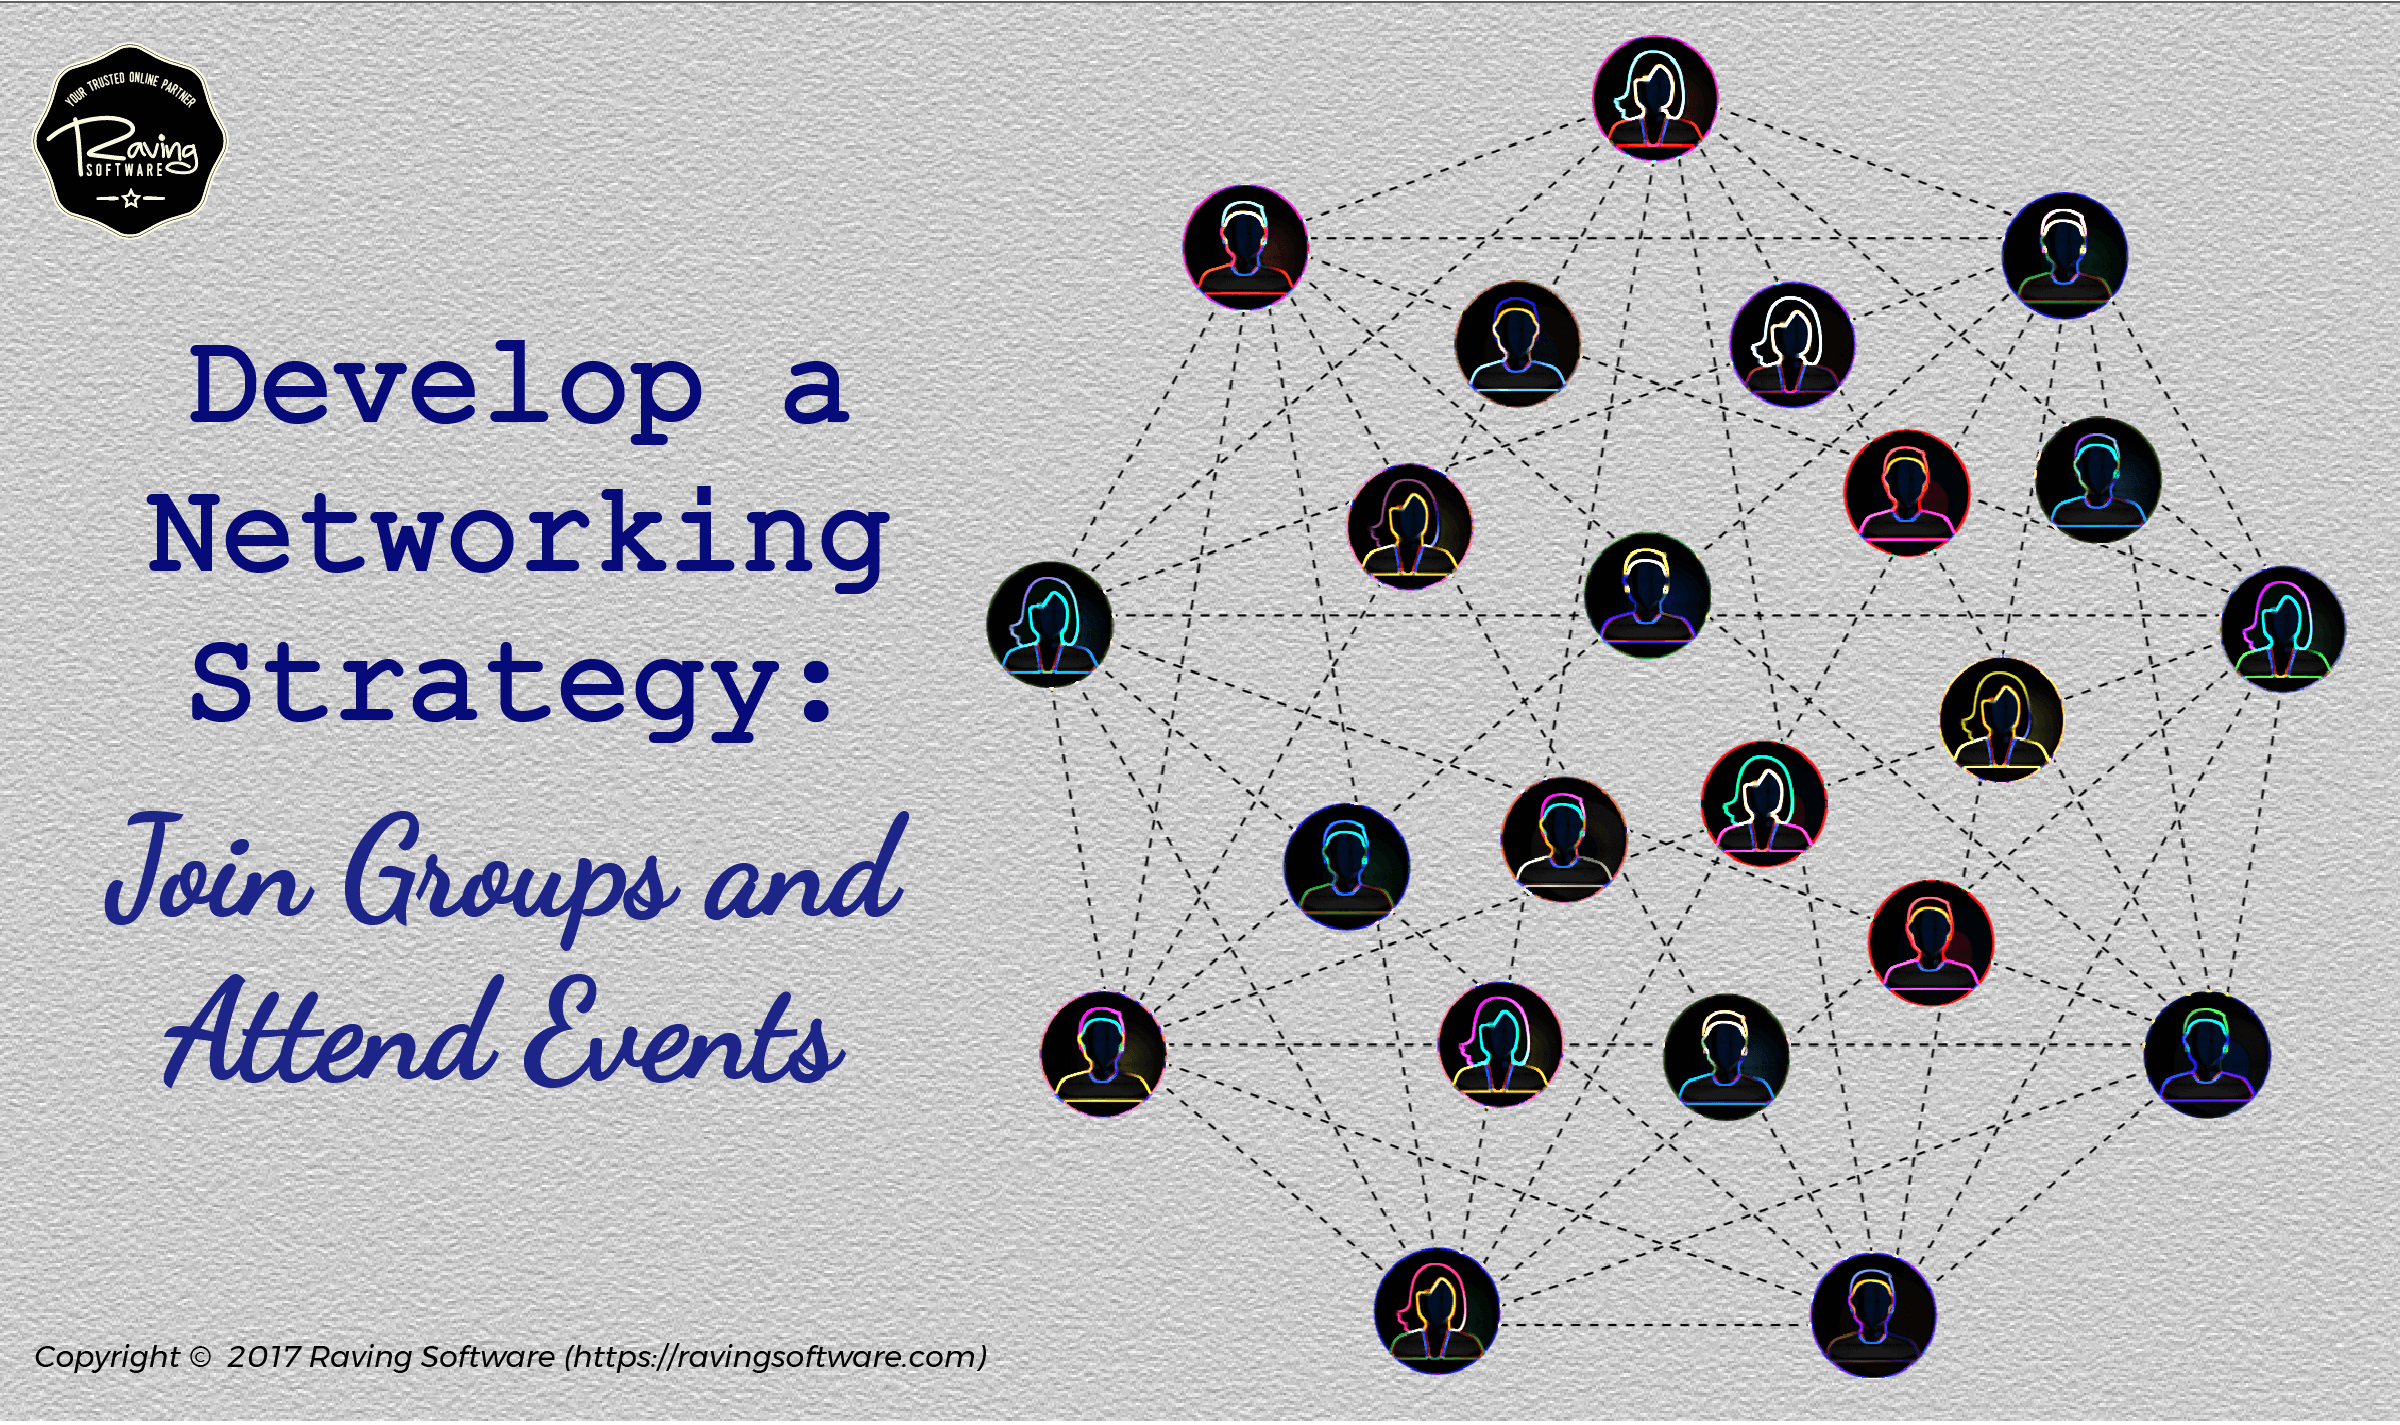 How to fit networking into your schedule.